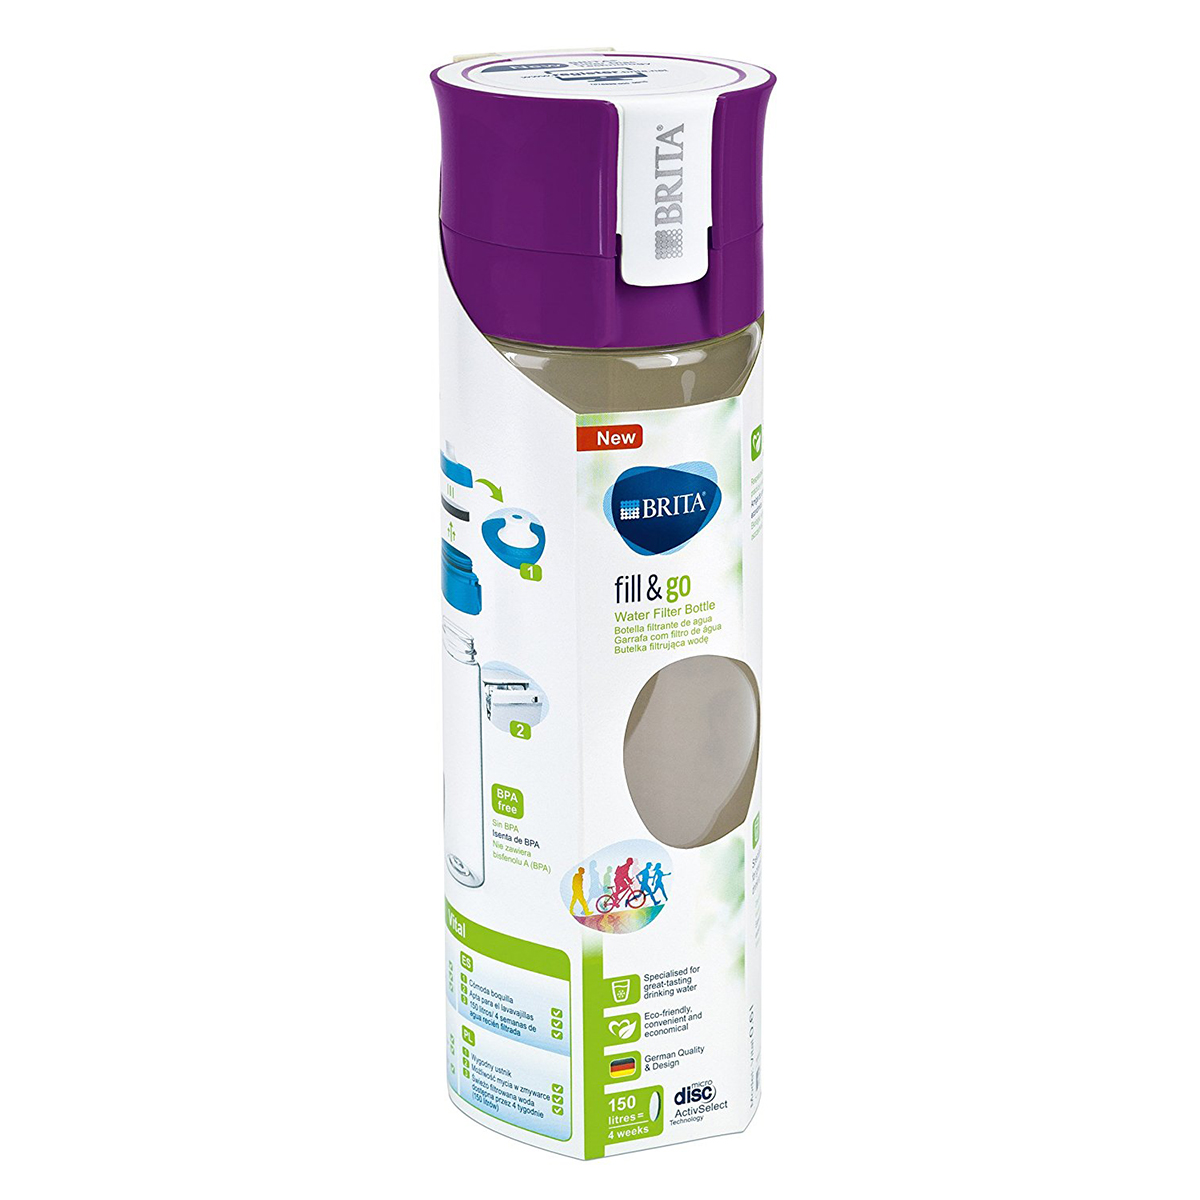 brita fill go wasserfilter flasche vital purple 13655168 reisezubeh r eurapon. Black Bedroom Furniture Sets. Home Design Ideas